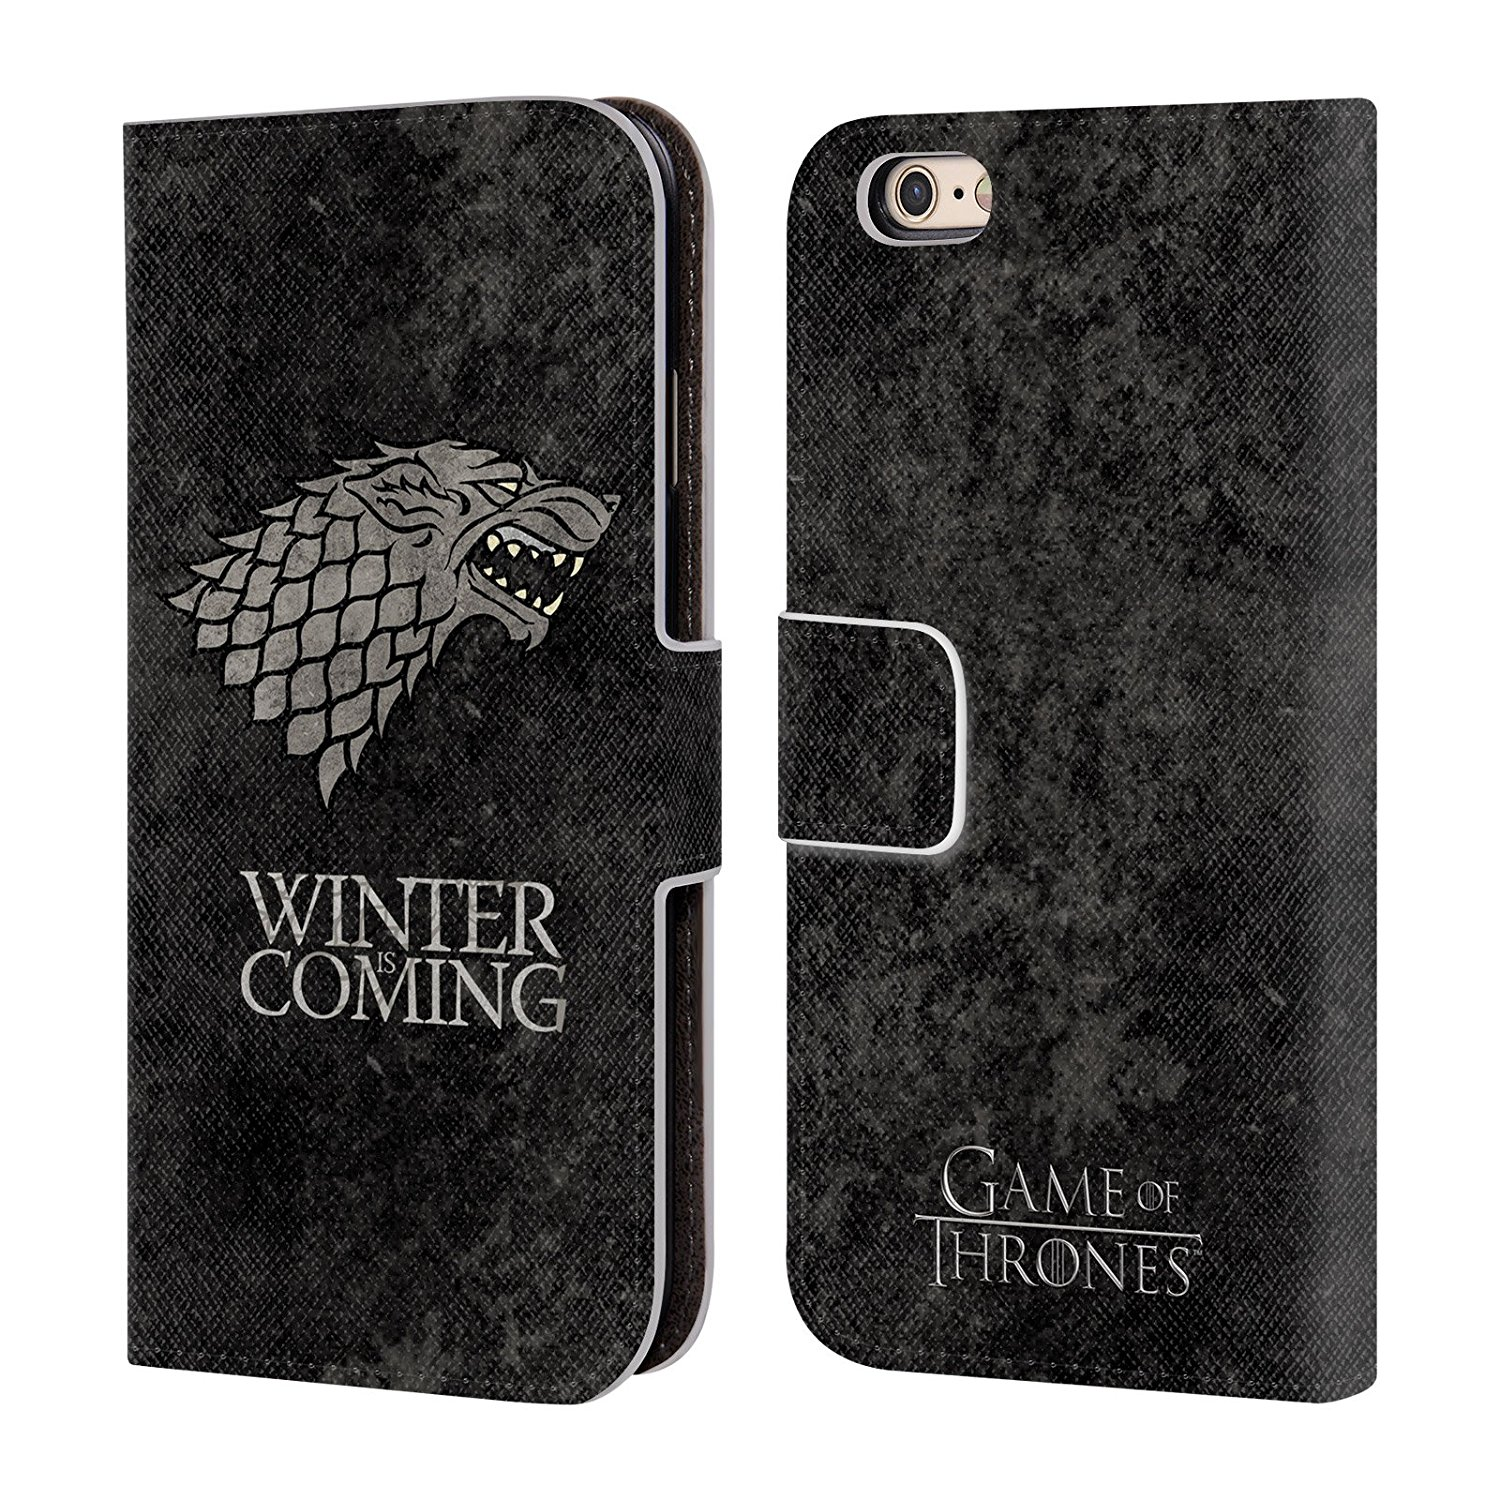 3.coque-got